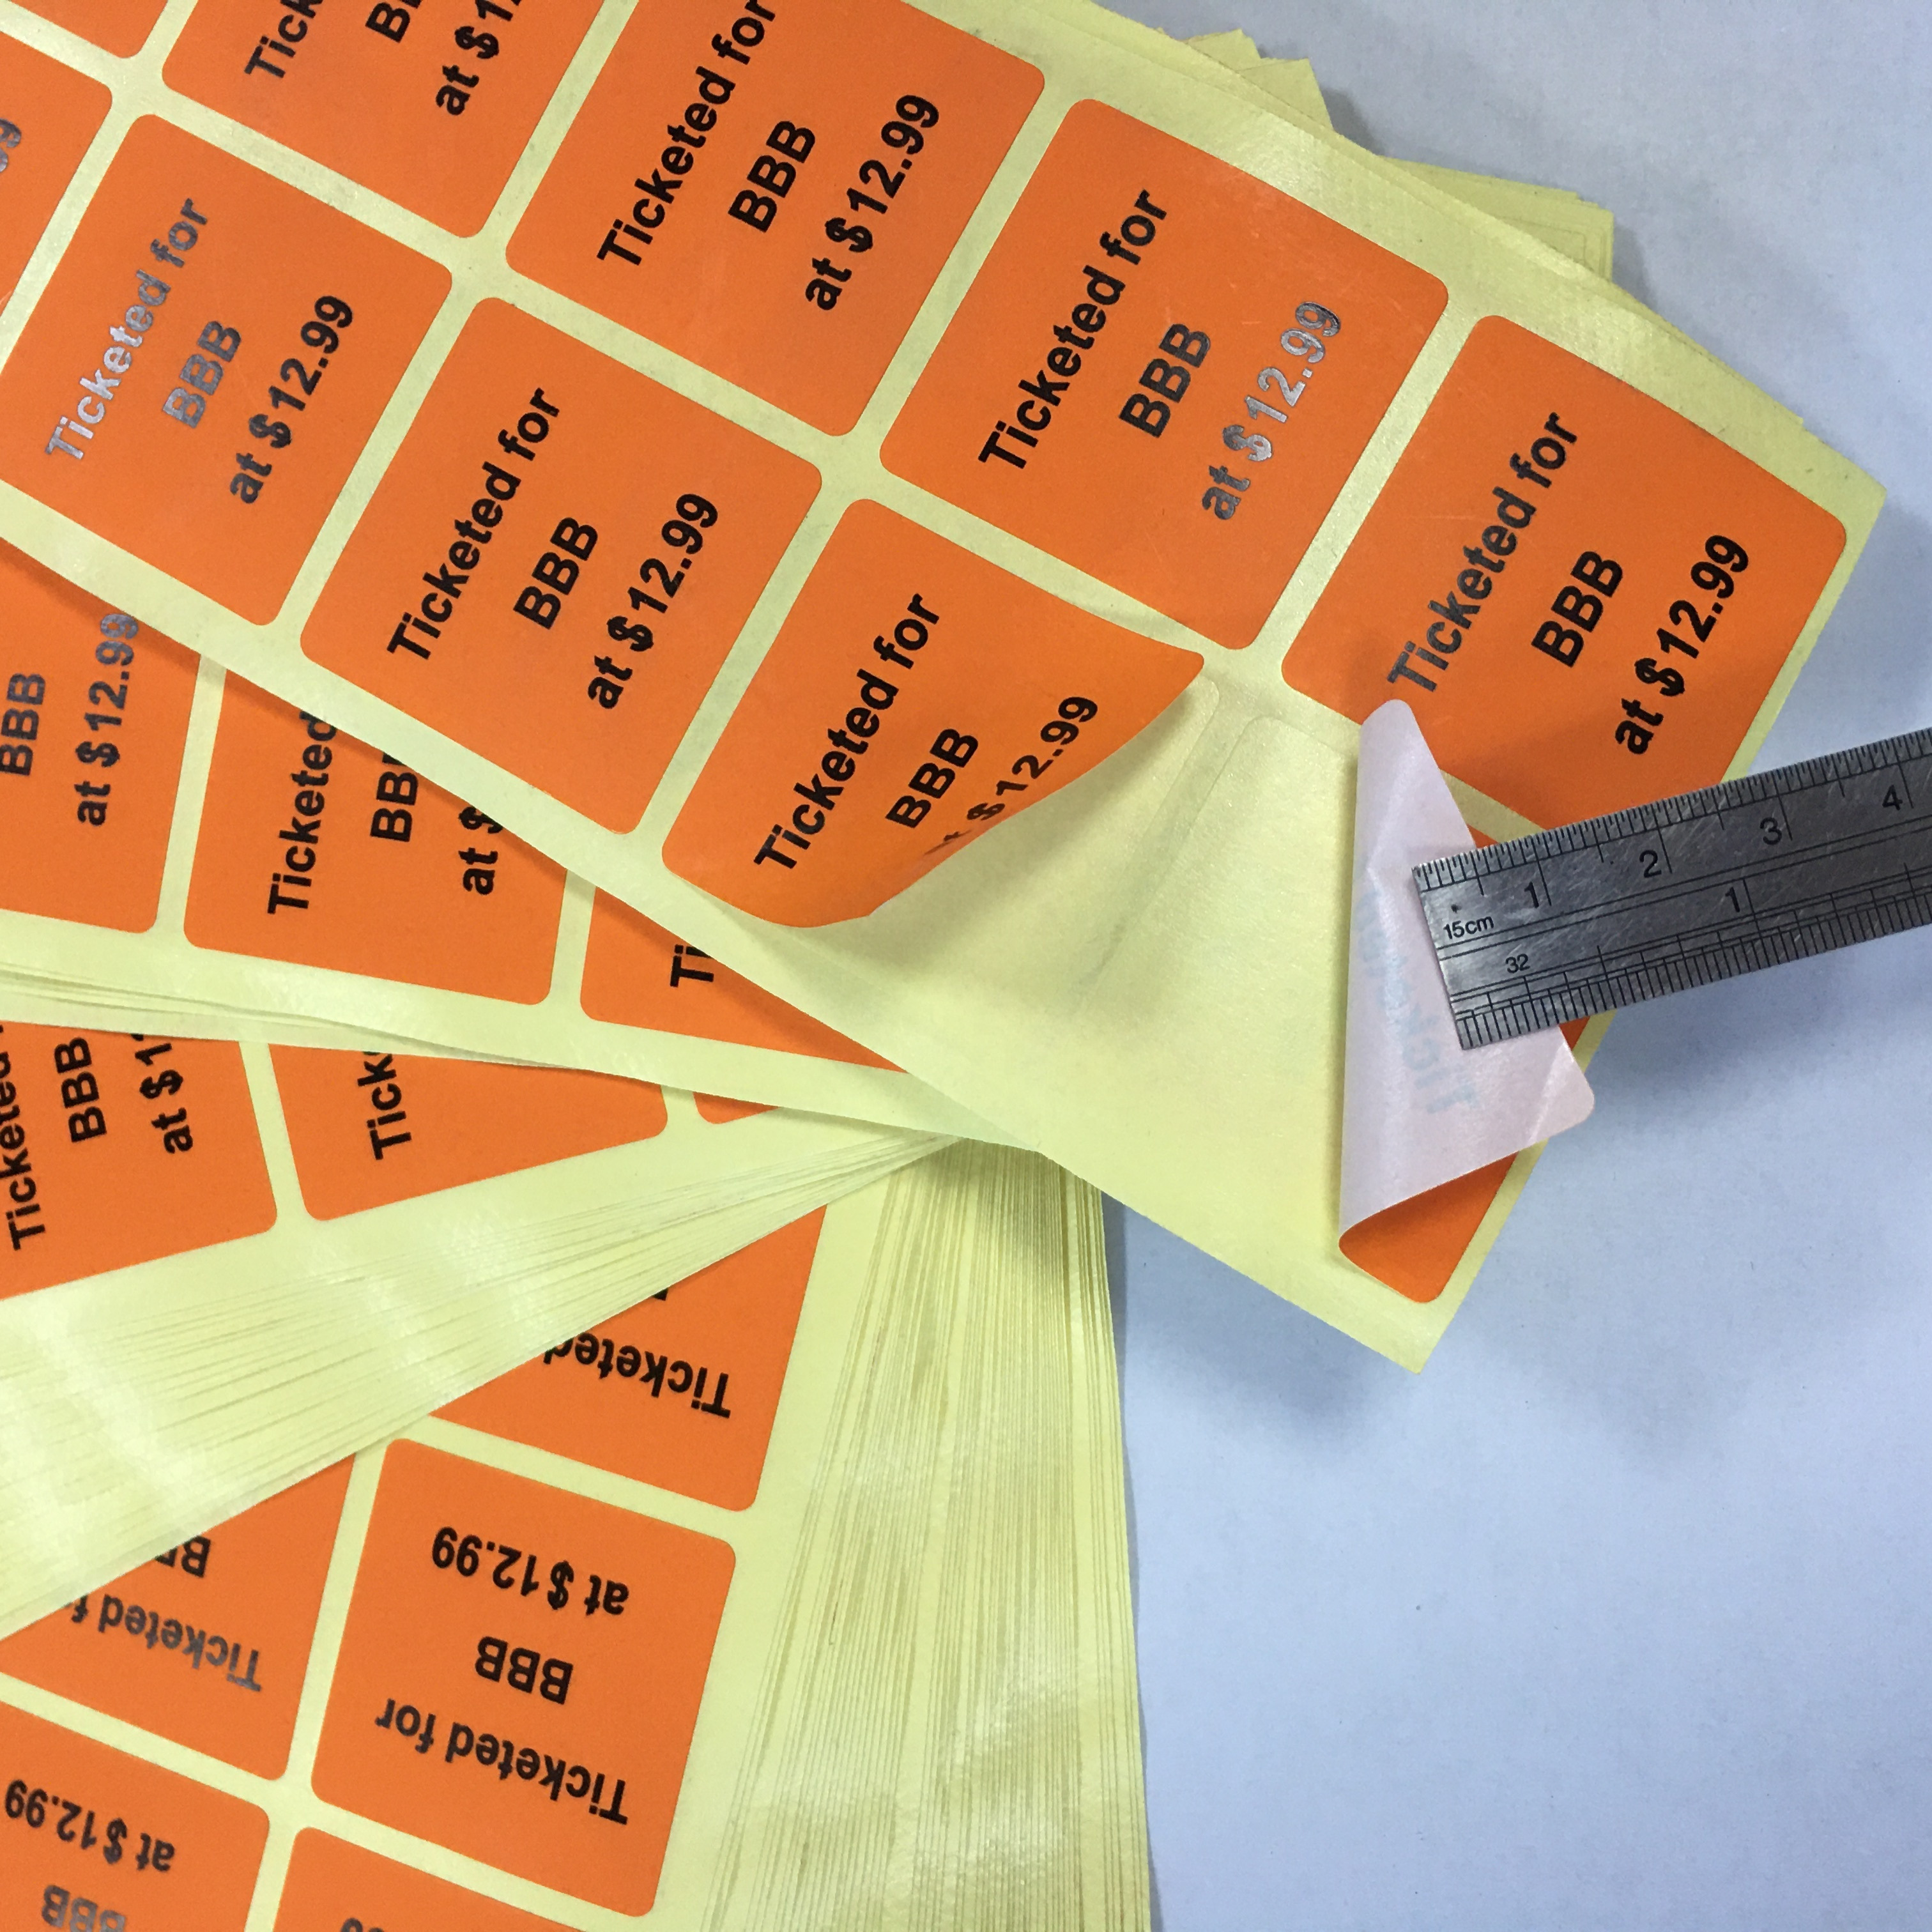 Labeling of Factory Materials green label Unqualified red label Yellow label to be processed